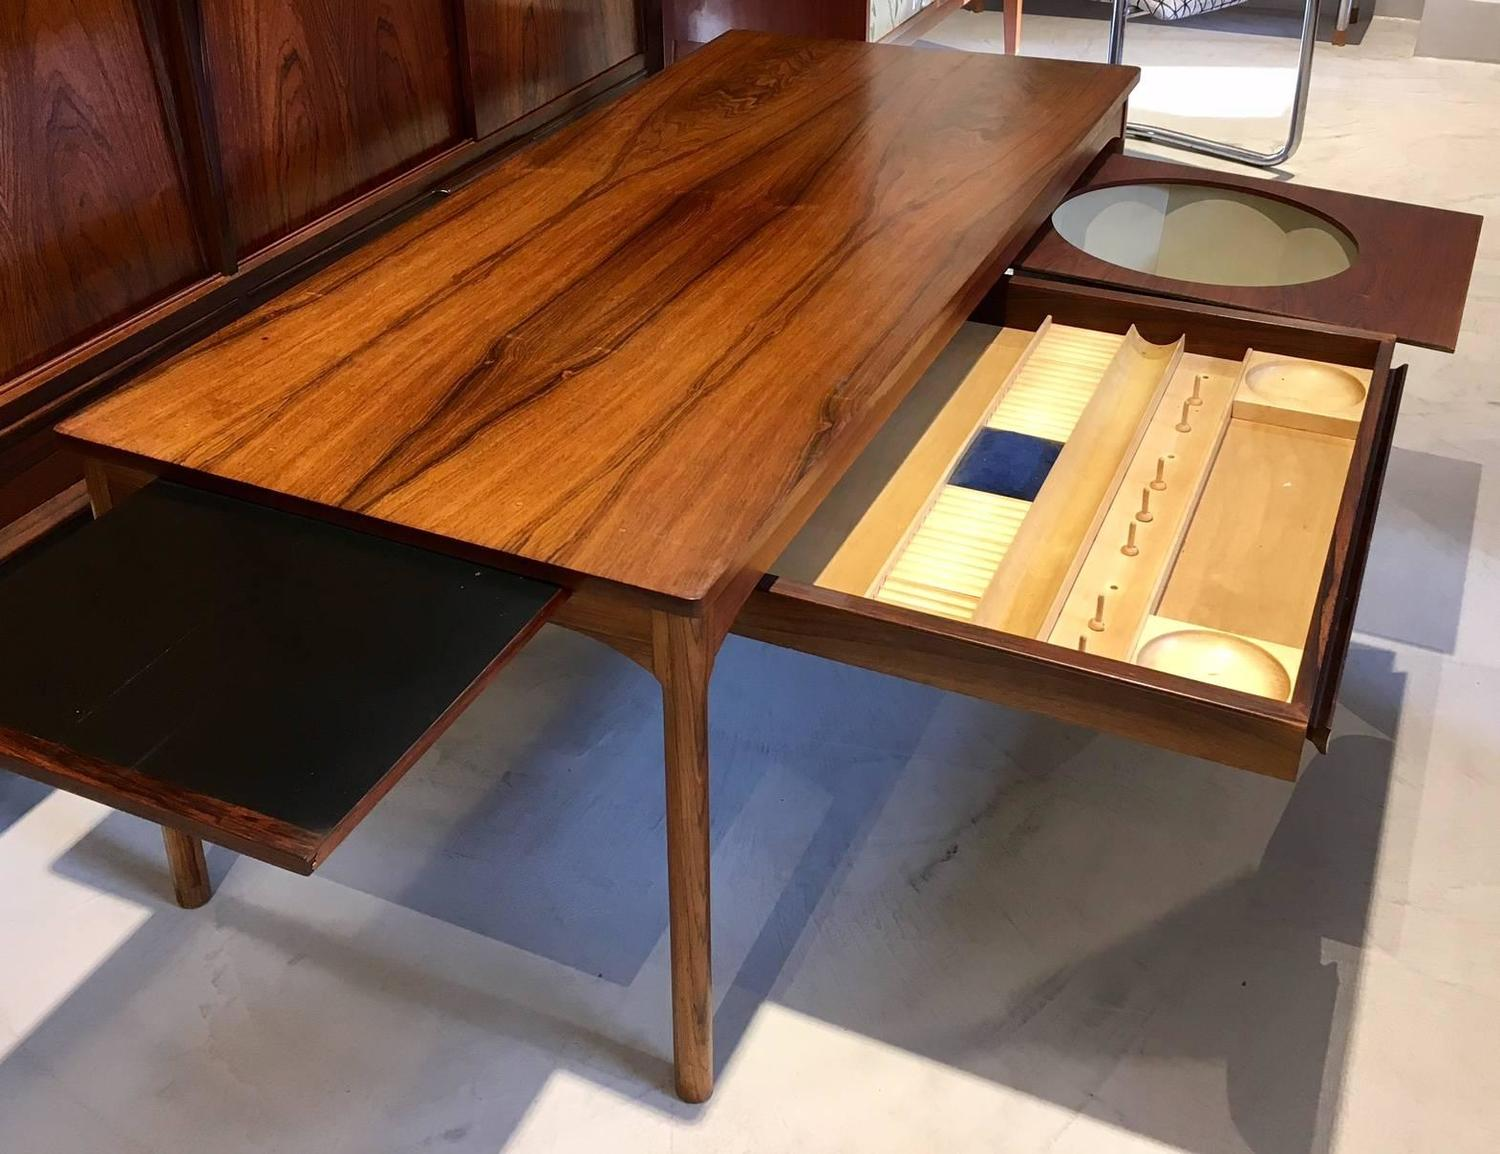 Danish Mid Century Modern Coffee Table With Drawers For Handicraft Materials For Sale At 1stdibs